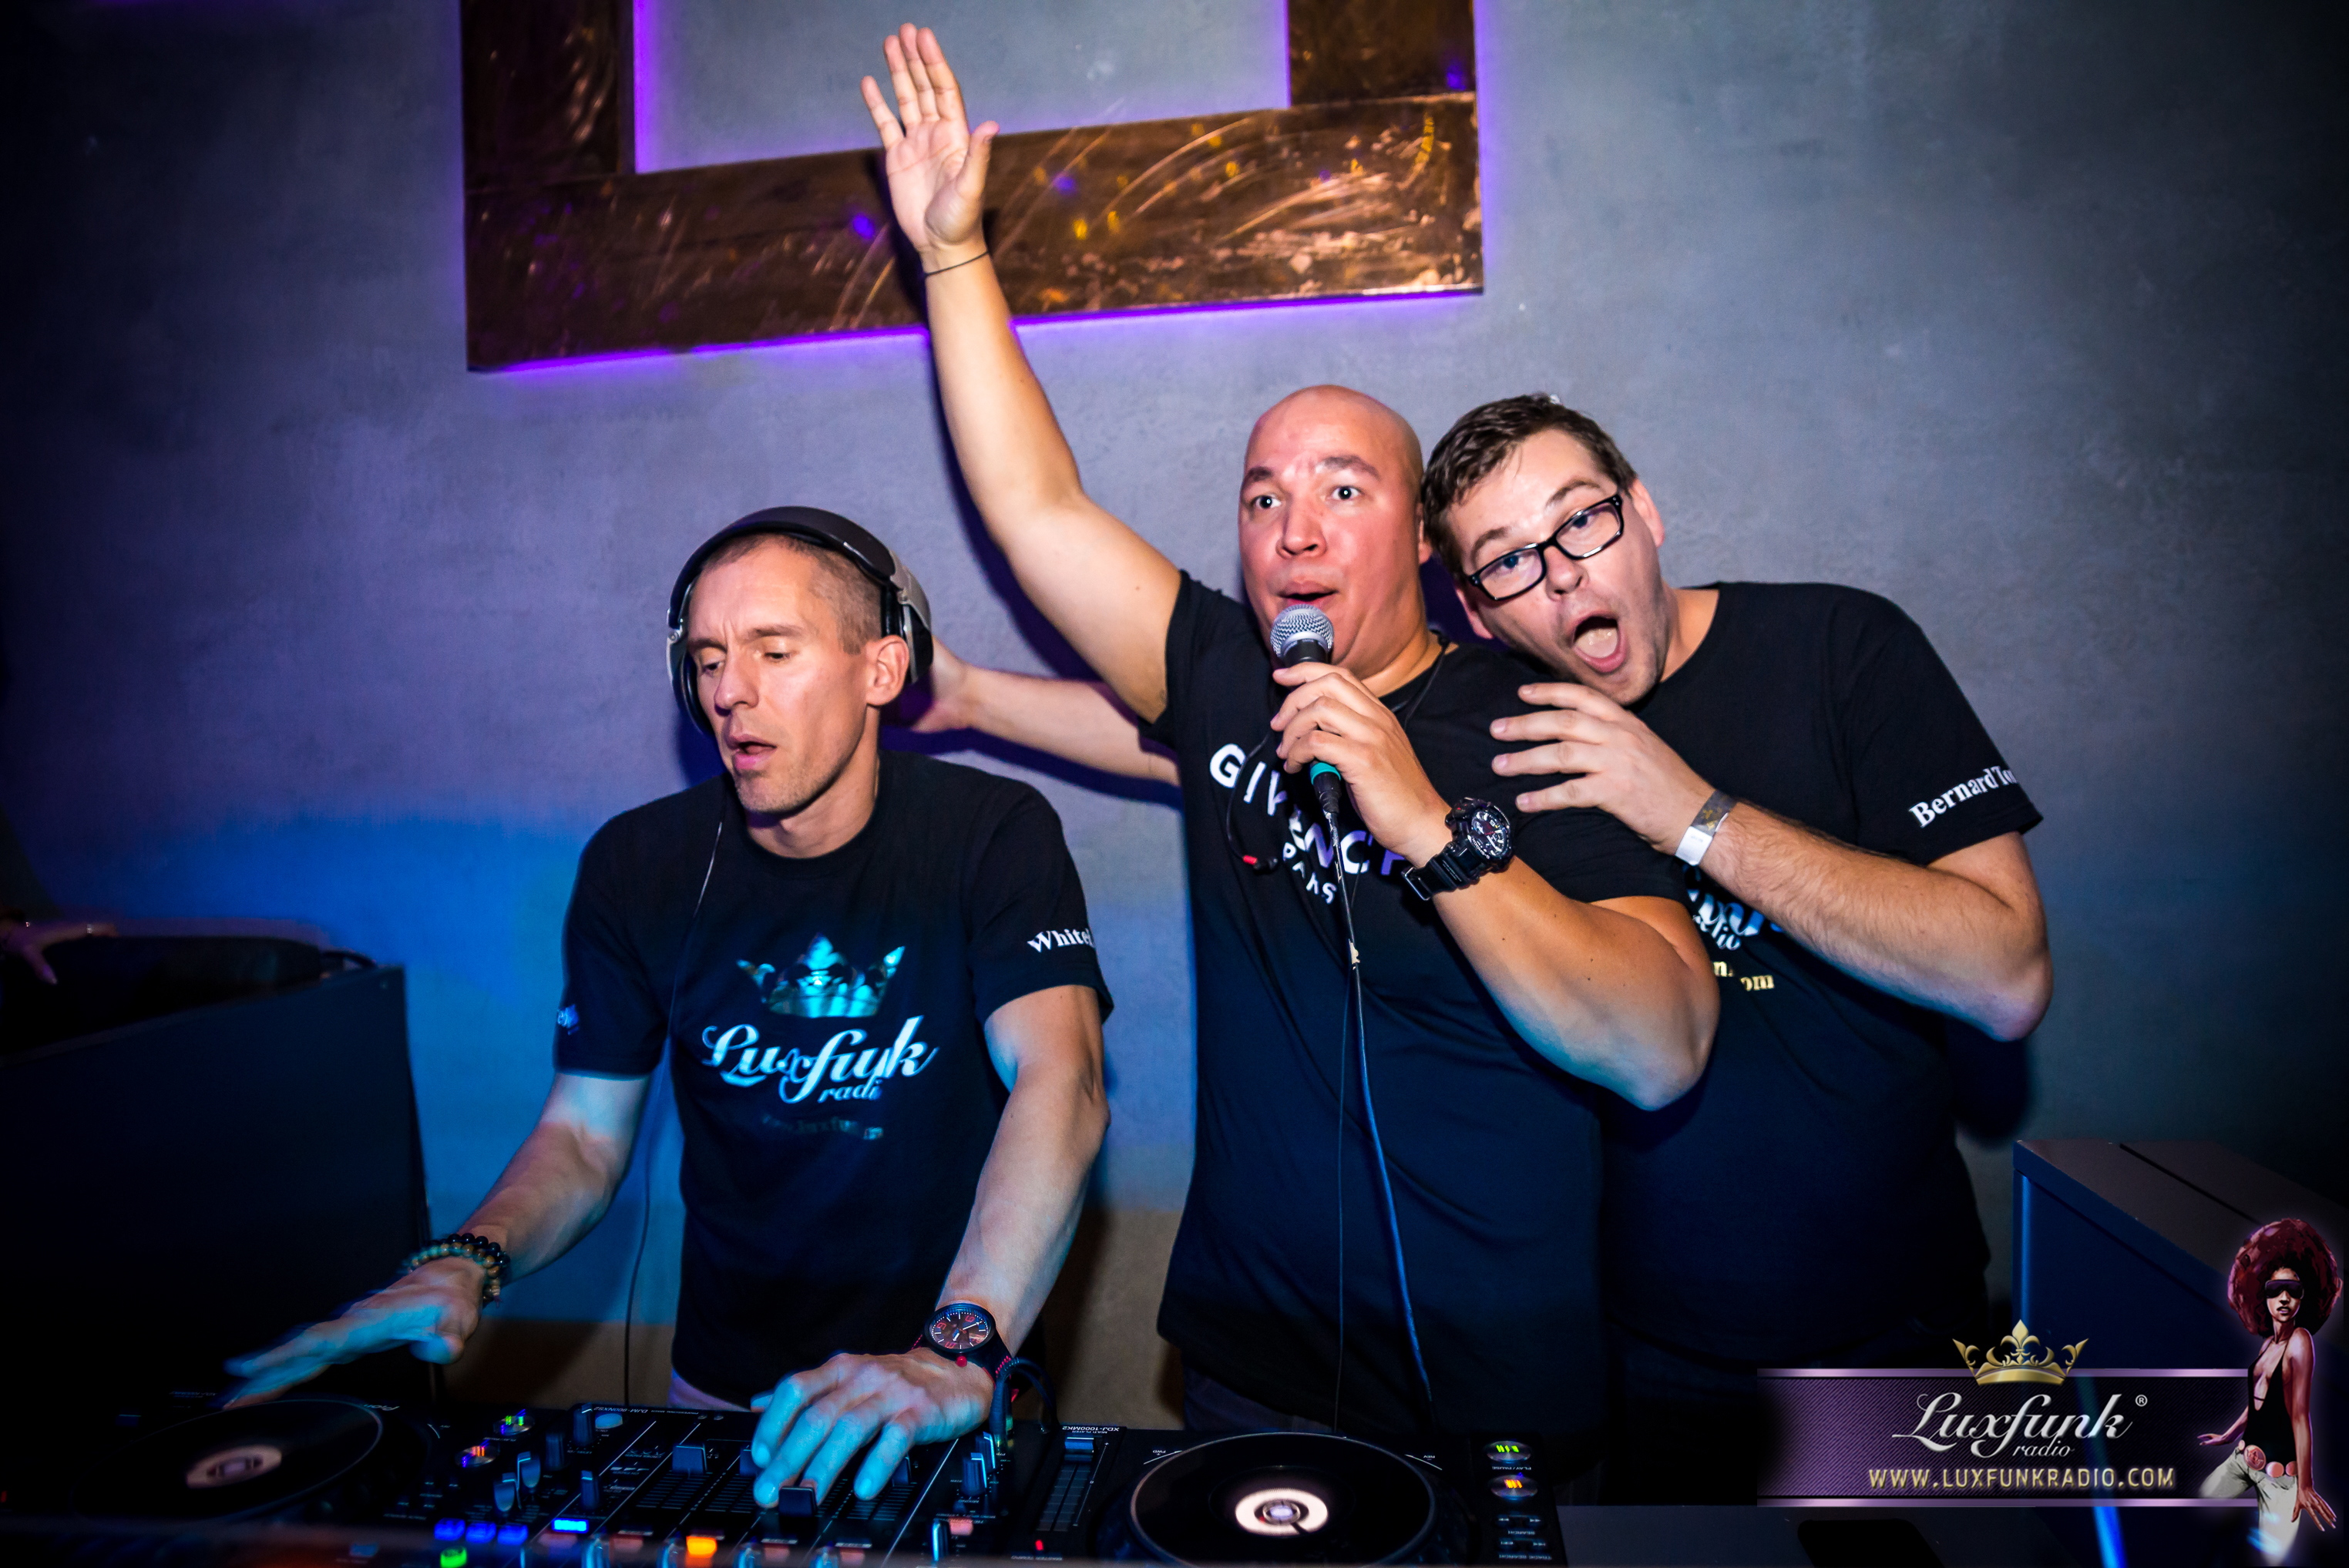 luxfunk-radio-funky-party-20191108-lock-budapest-1360